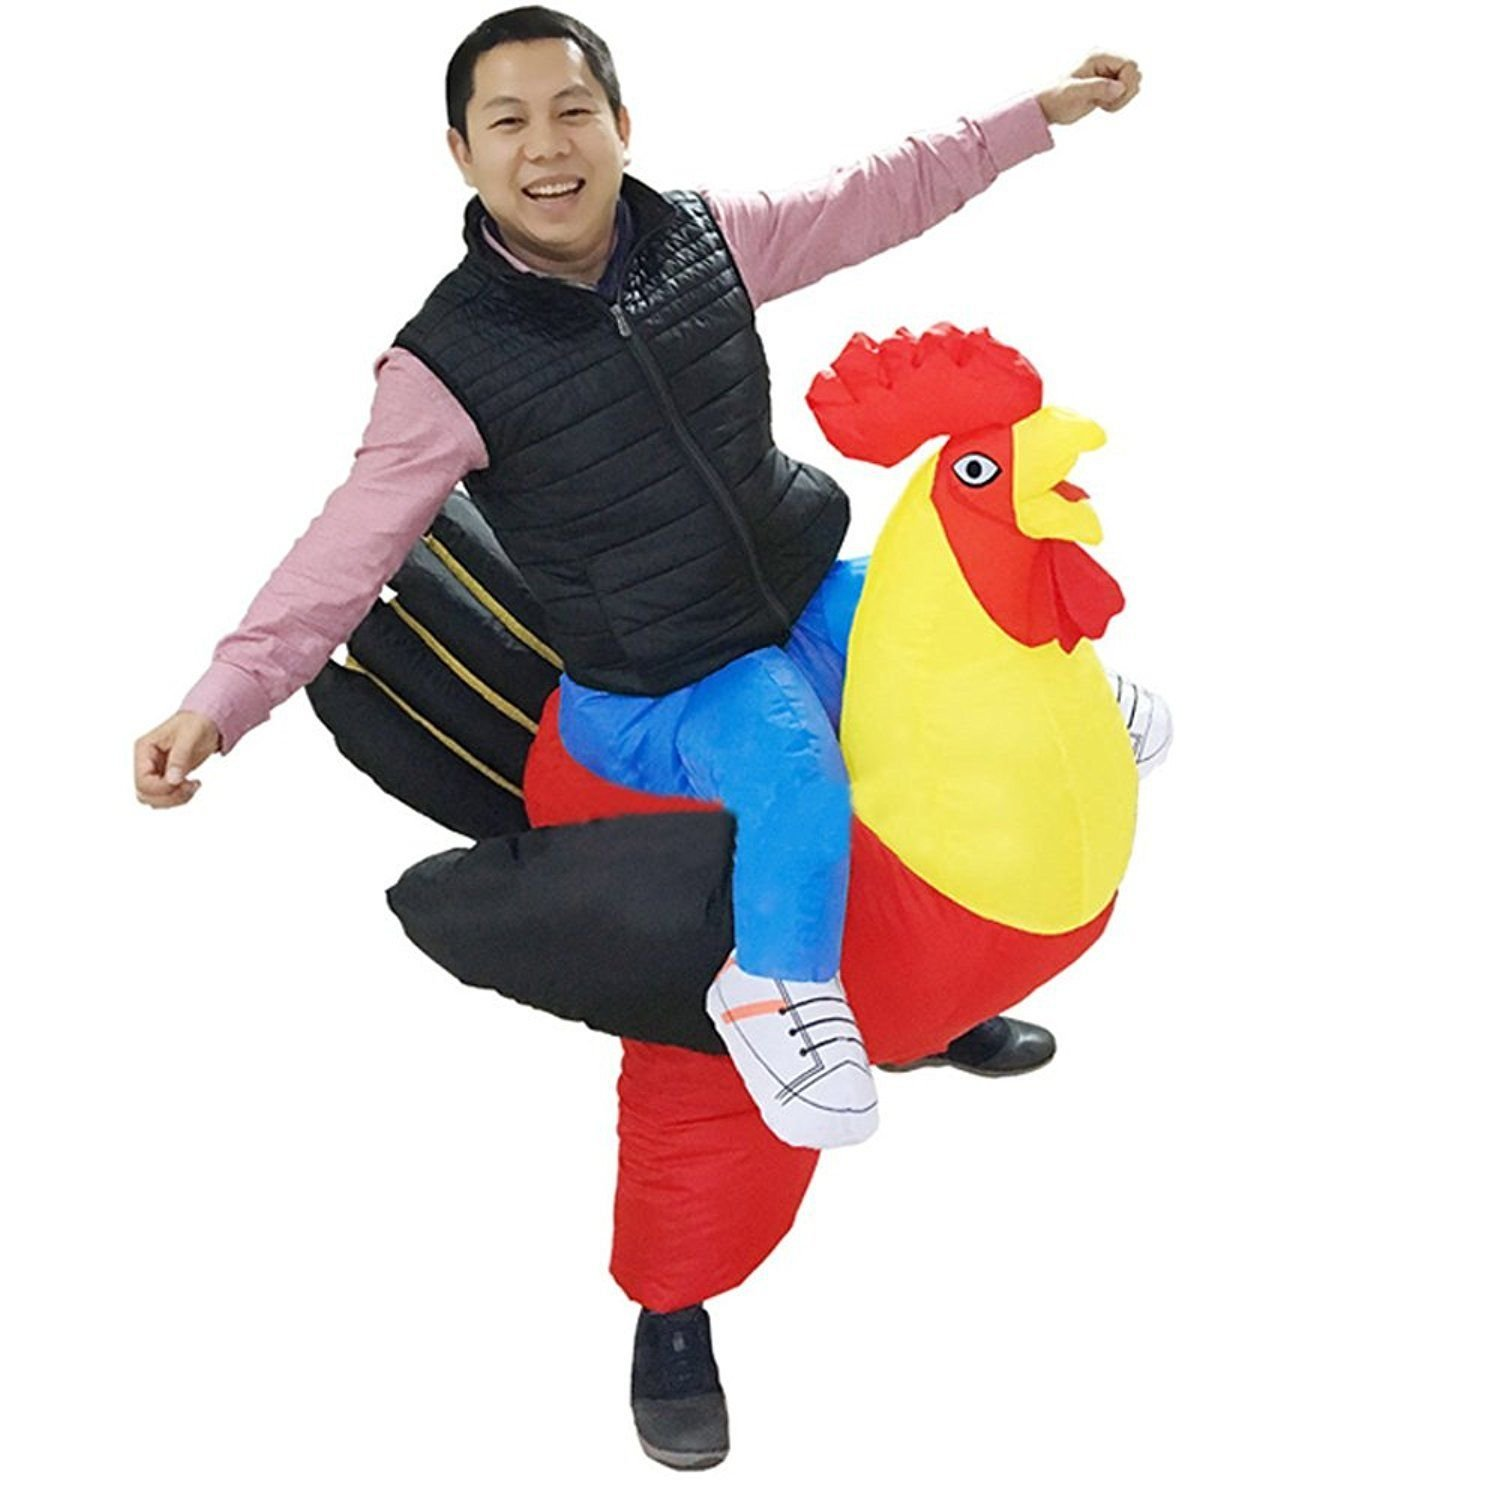 Wecloth Inflatable Chicken Costume Adult Rooster Cock Fancy Dress Cosplay Hen Stag Night Outfit 308Colorful448Sumo-Blue-Child